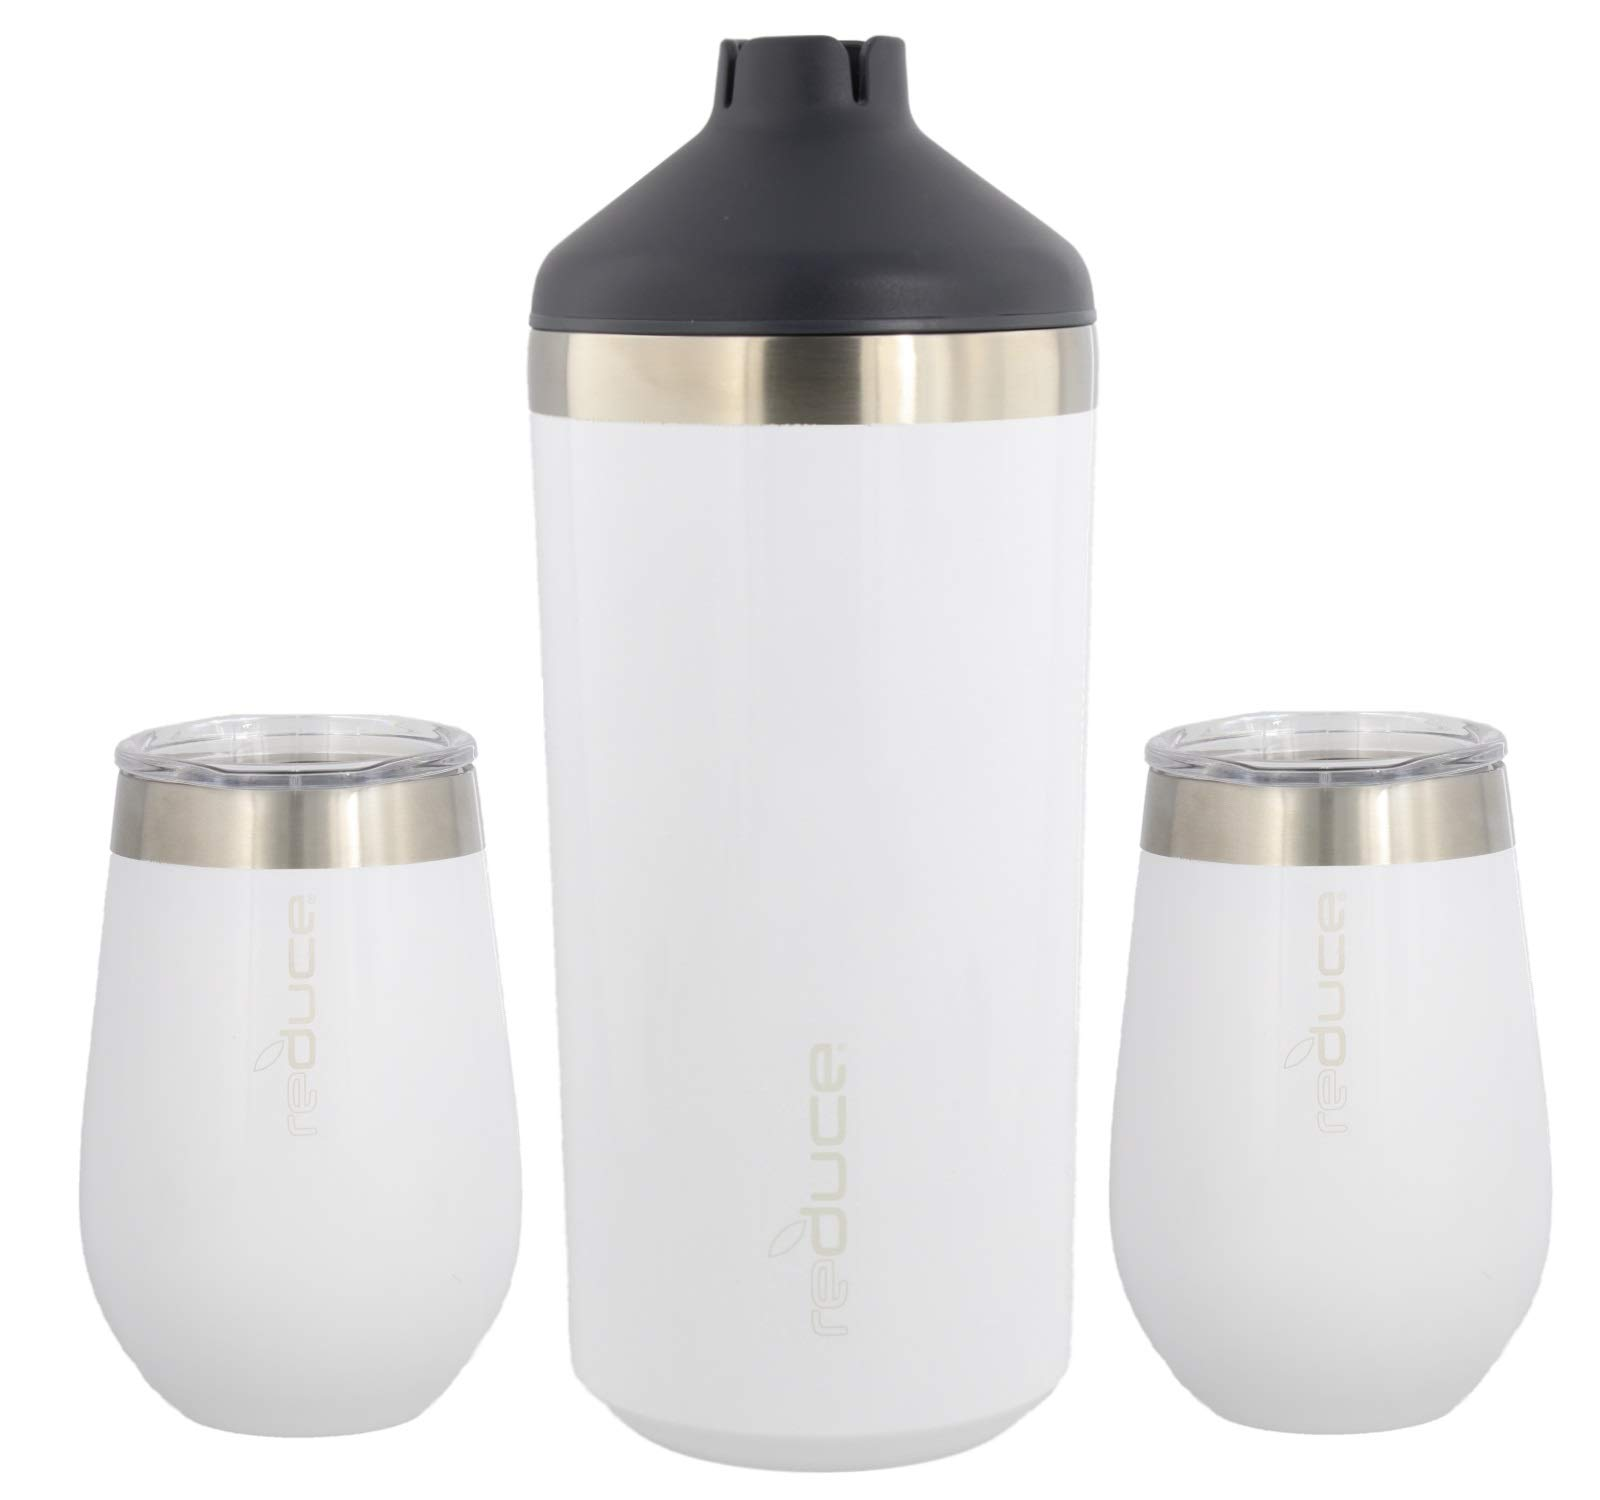 reduce Stainless Steel Wine Cooler Set, Opaque Gloss White - Includes (1) 750mL Wine Cooler with (2) Vacuum Insulated 12oz Wine Tumblers – Tasteless & Odorless, BPA Free